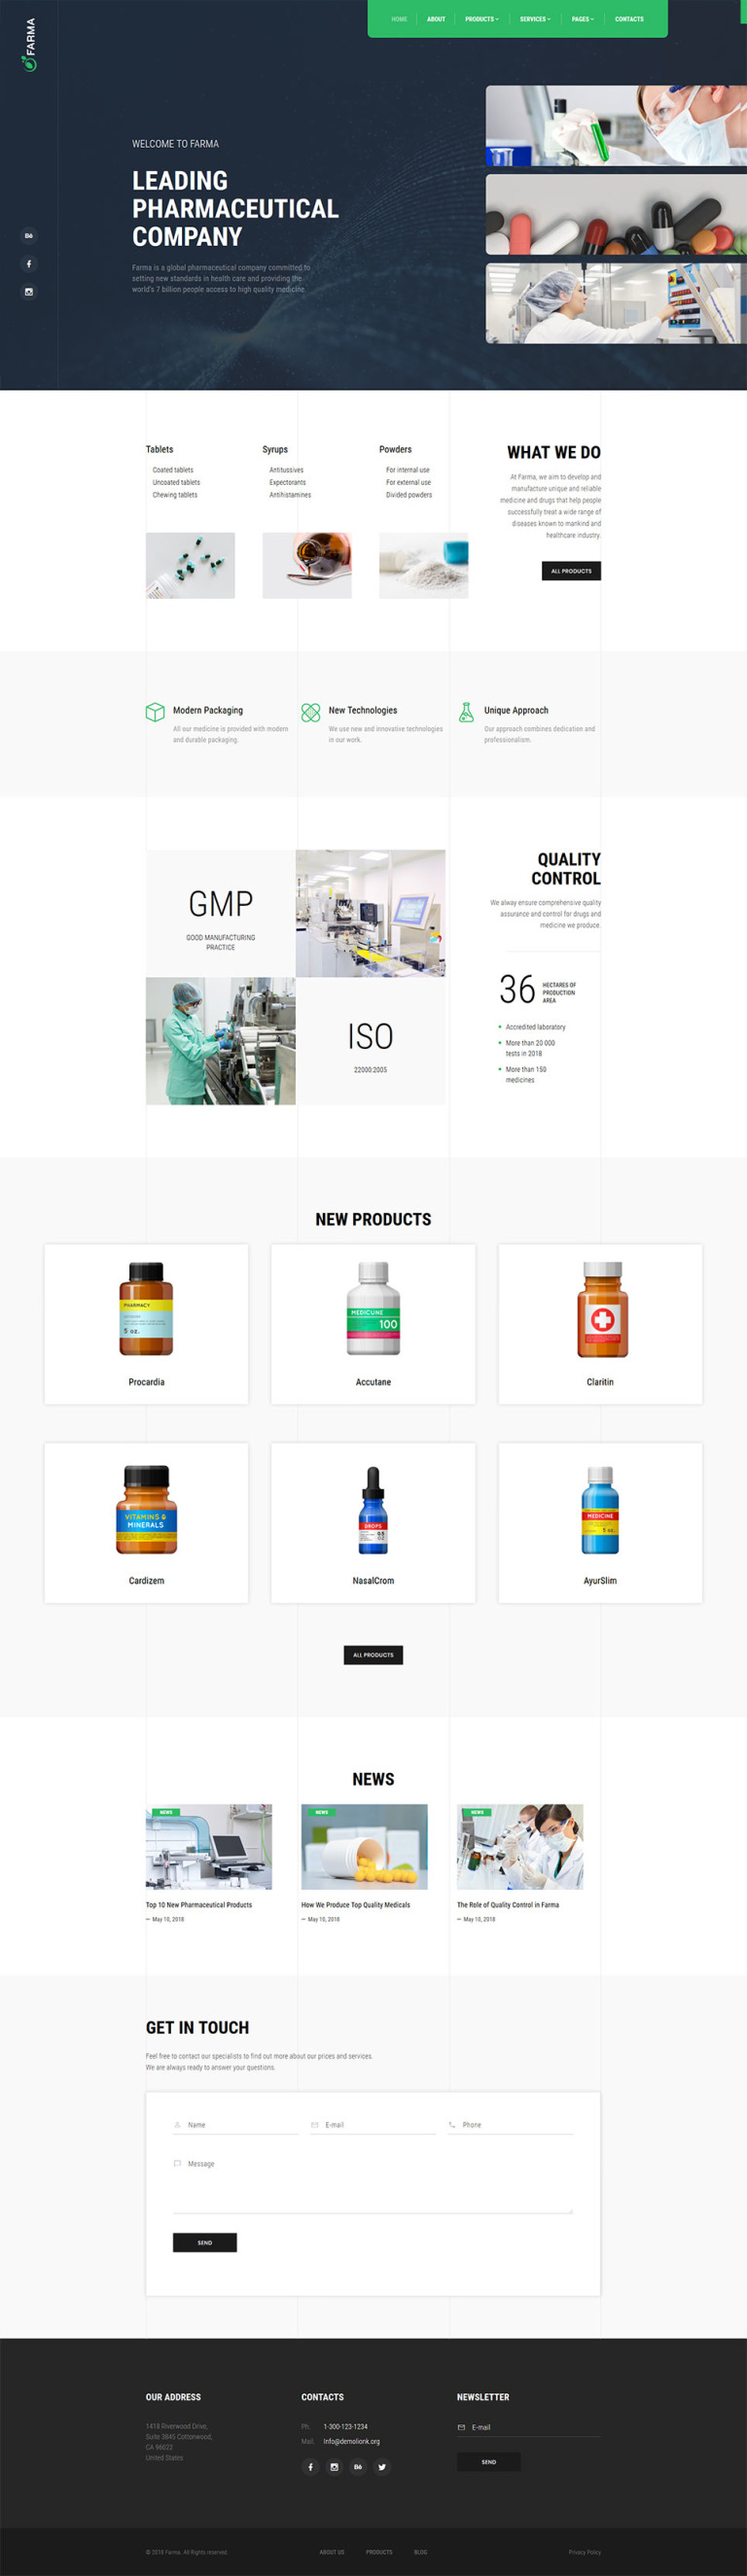 Pharmacy Co. - Medical & Drug Store Website Template New Screenshots BIG